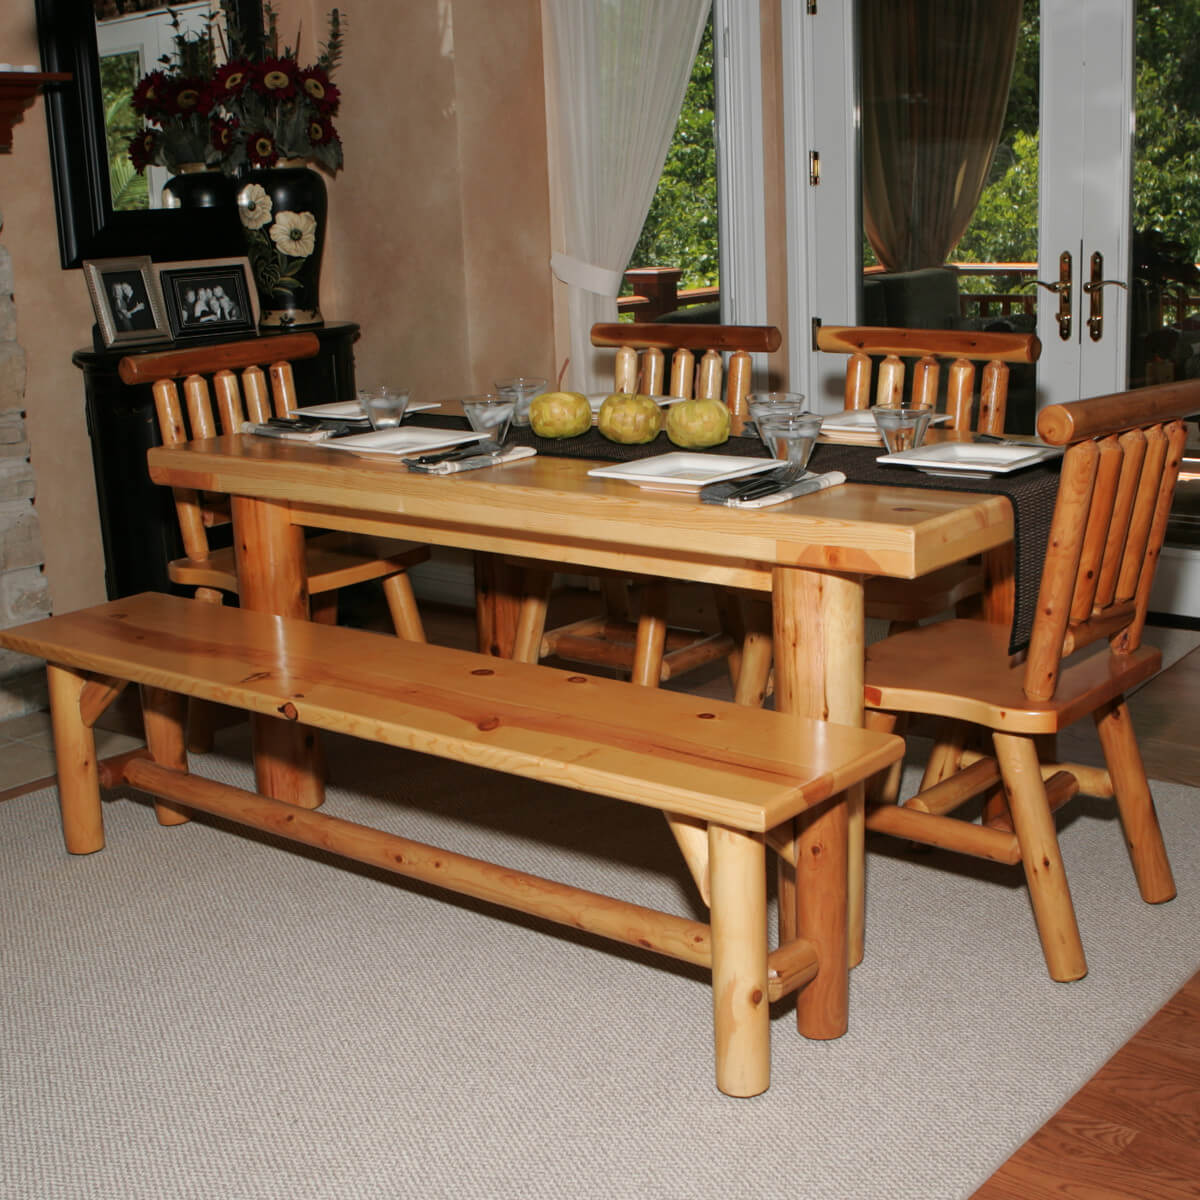 Dining Table Set With Bench Perfect For The Log Cabin Or Home Seating